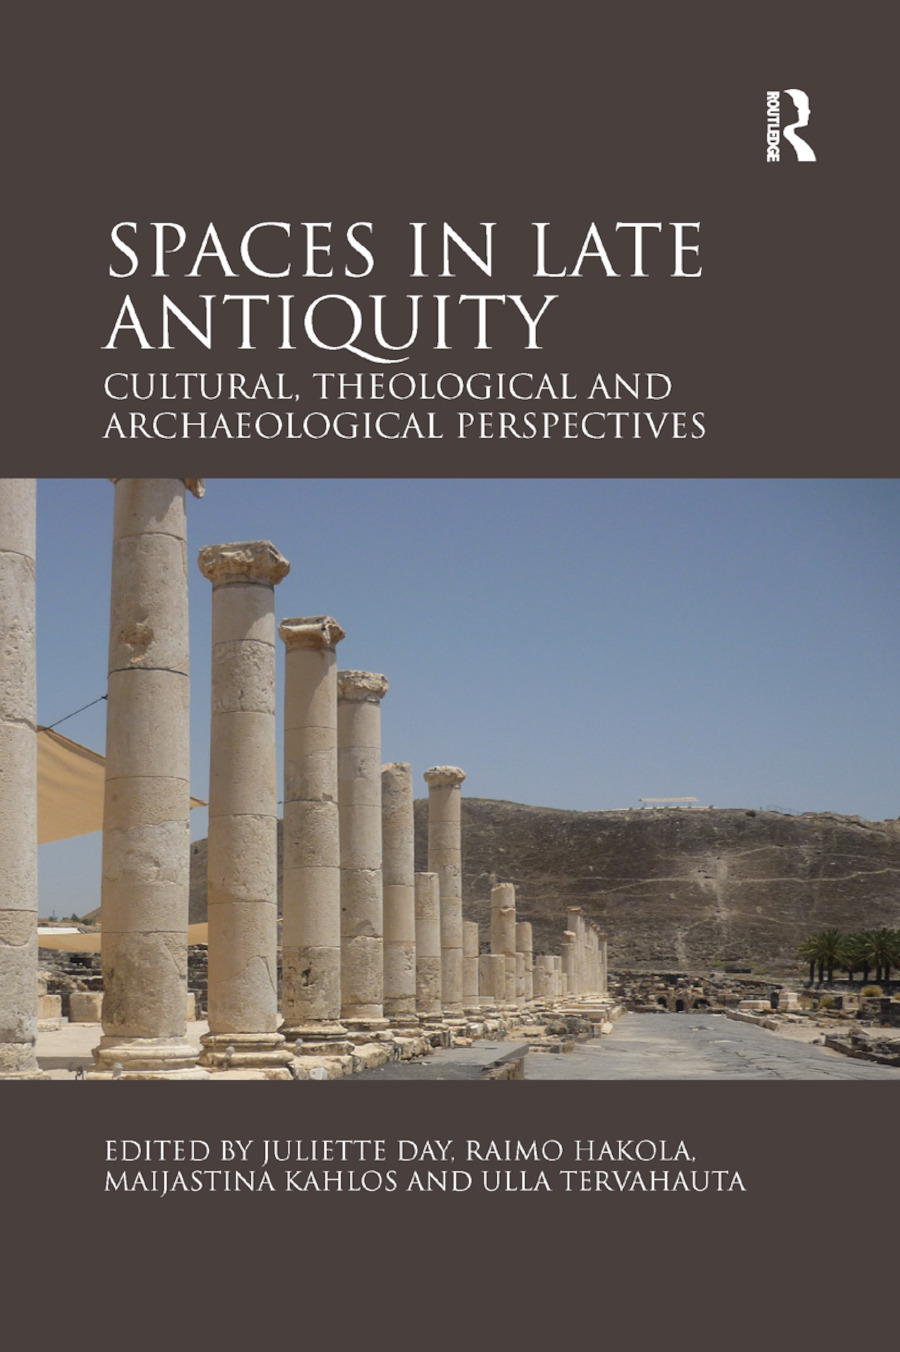 Spaces in Late Antiquity